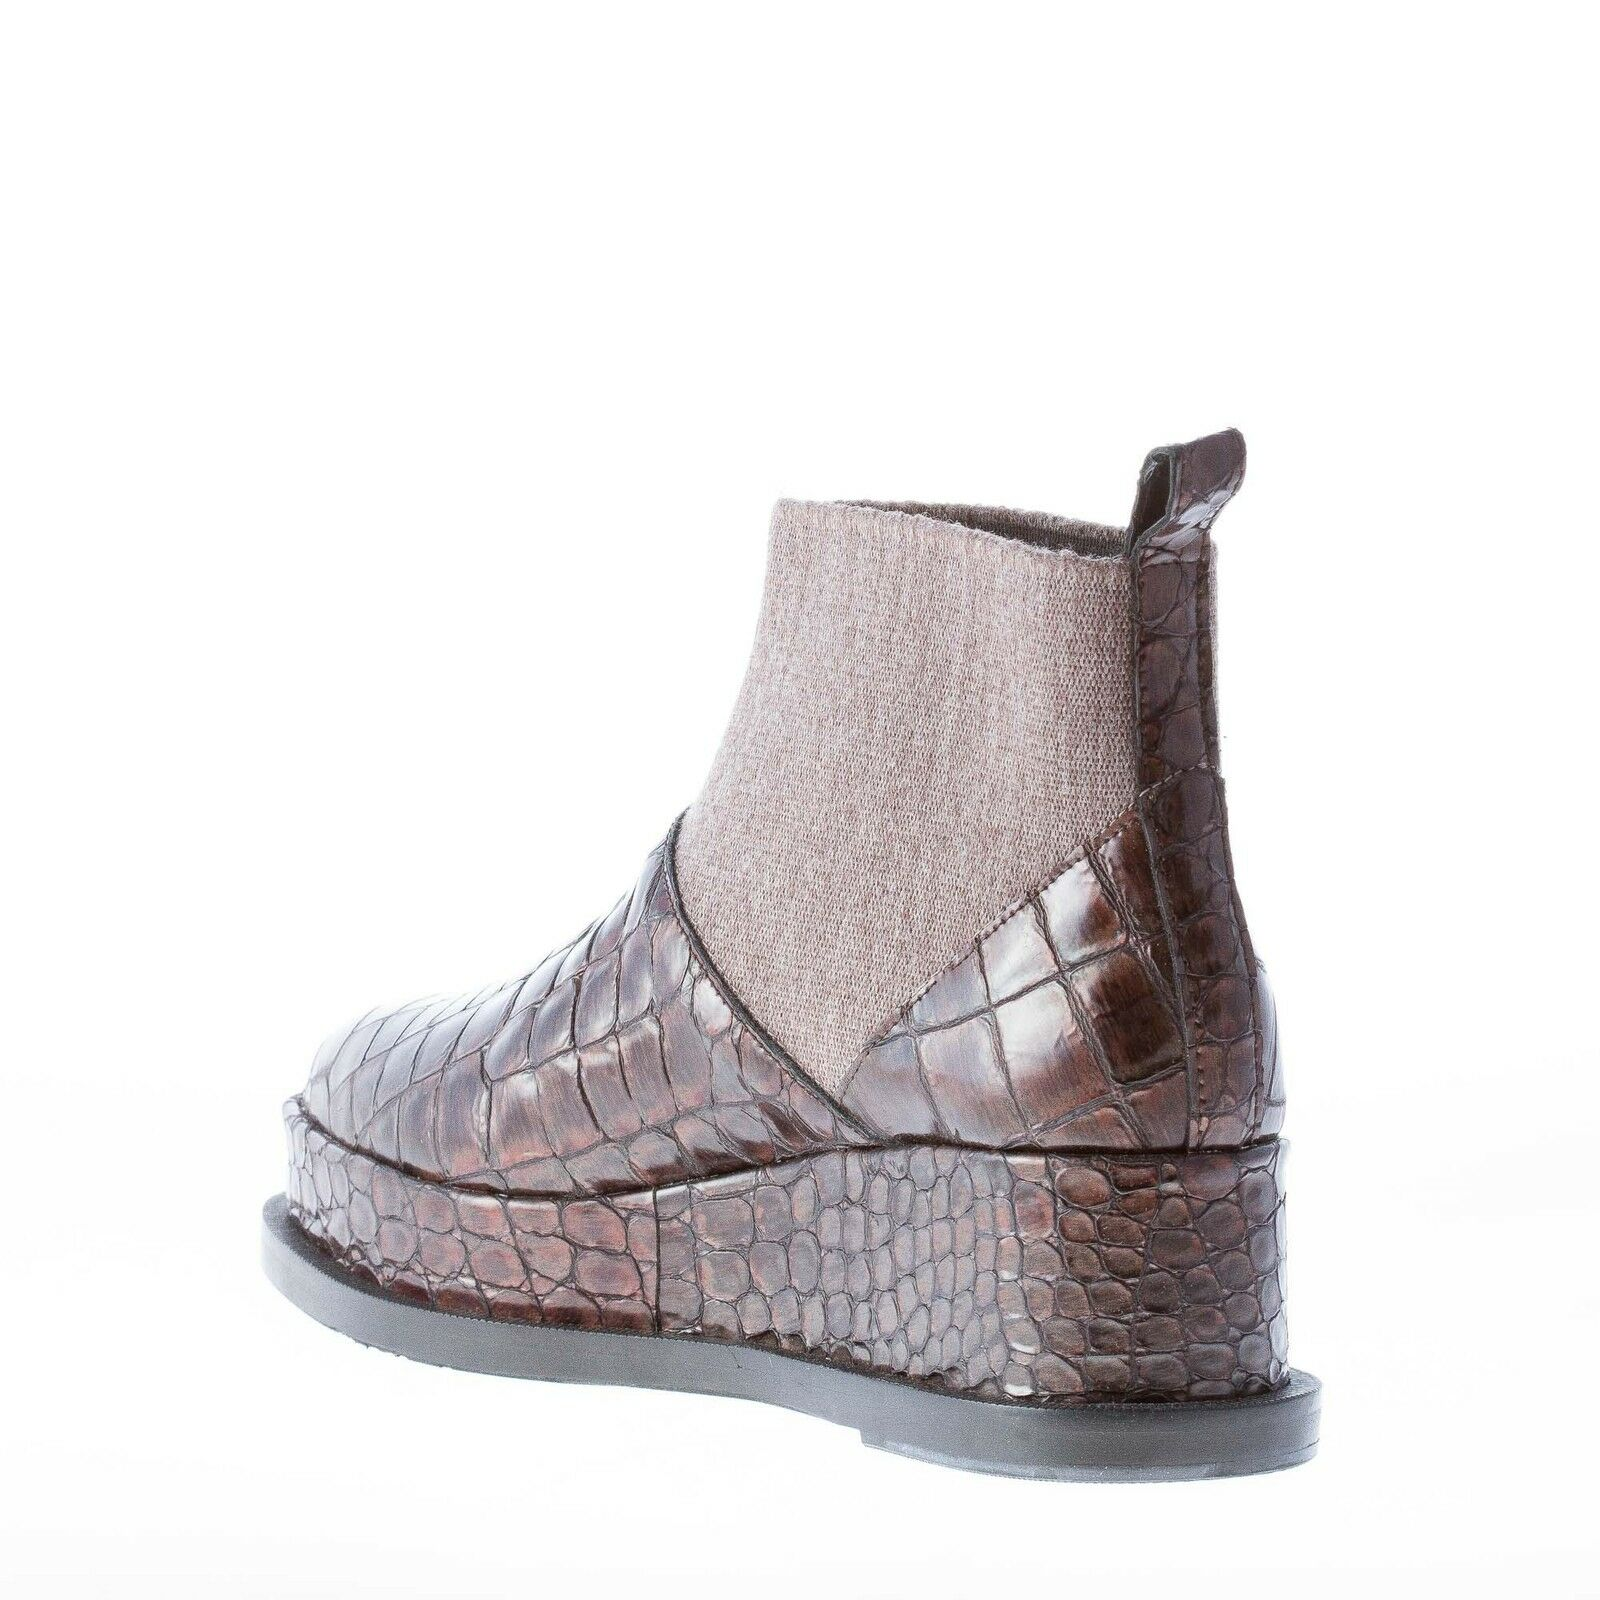 RAS women shoes Brown croco embossed leather leather leather stretch wedge ankle boot 44f3a5